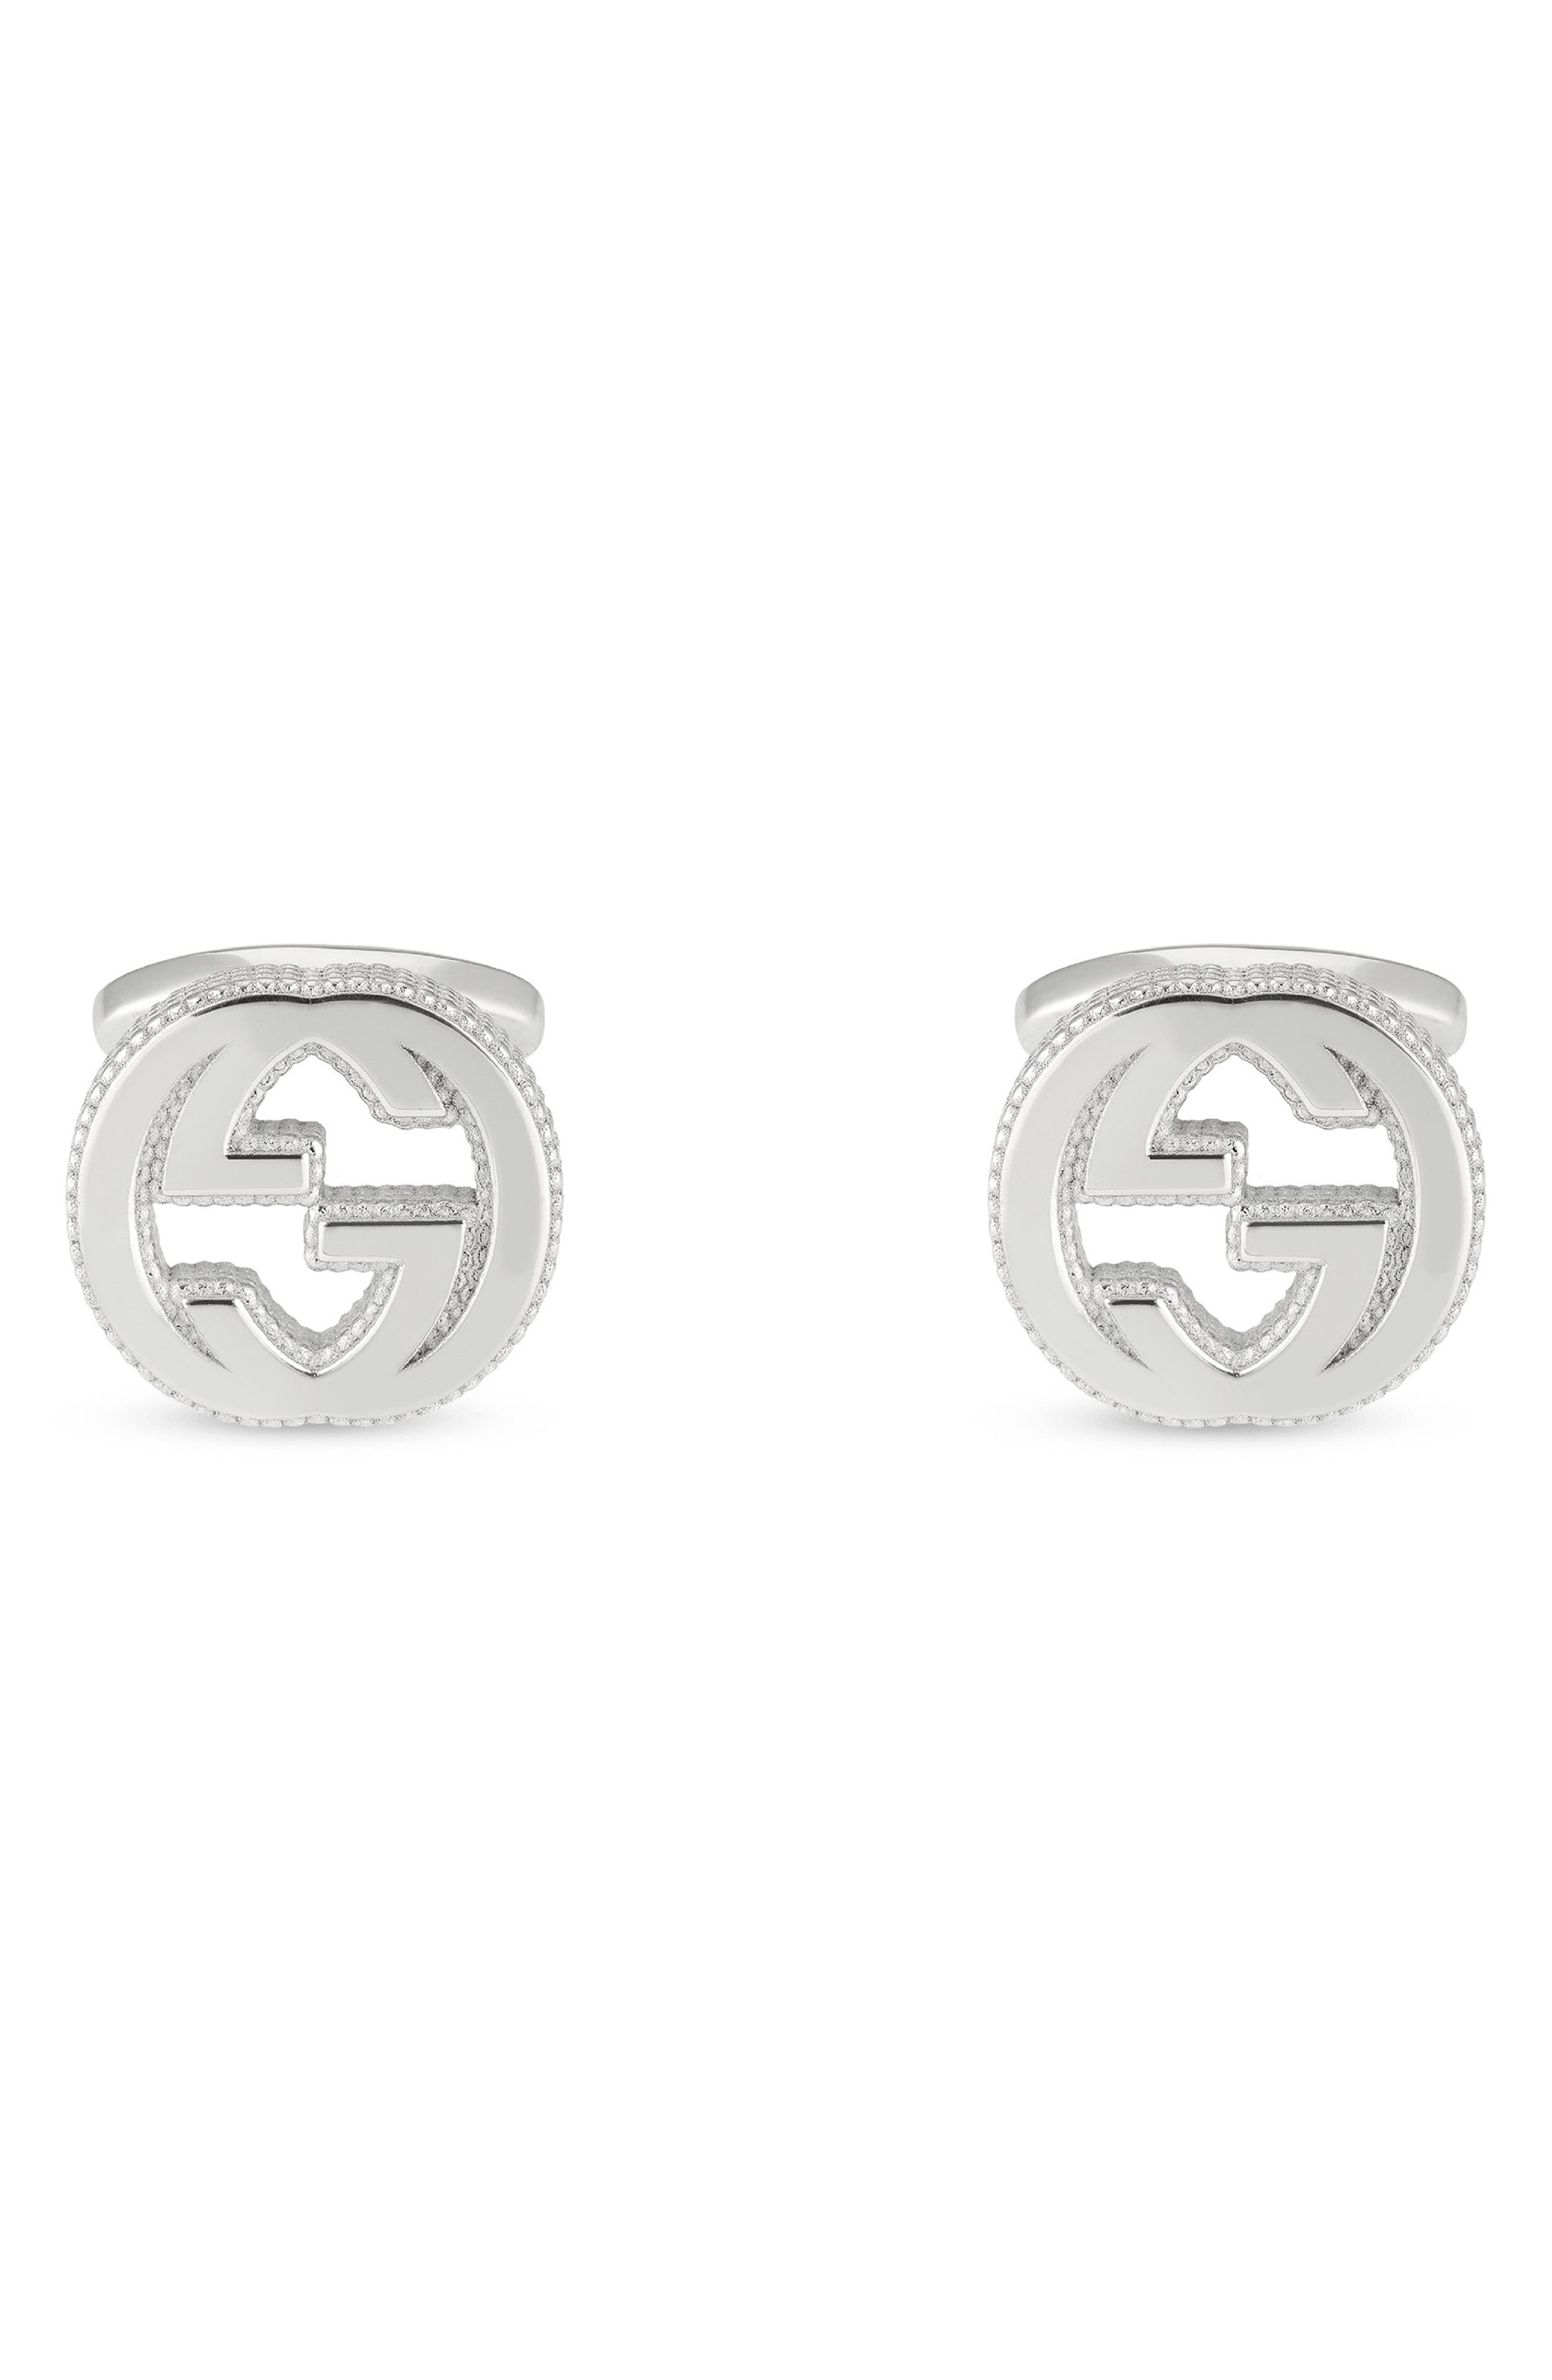 Double-G Cuff Links,                         Main,                         color, 040